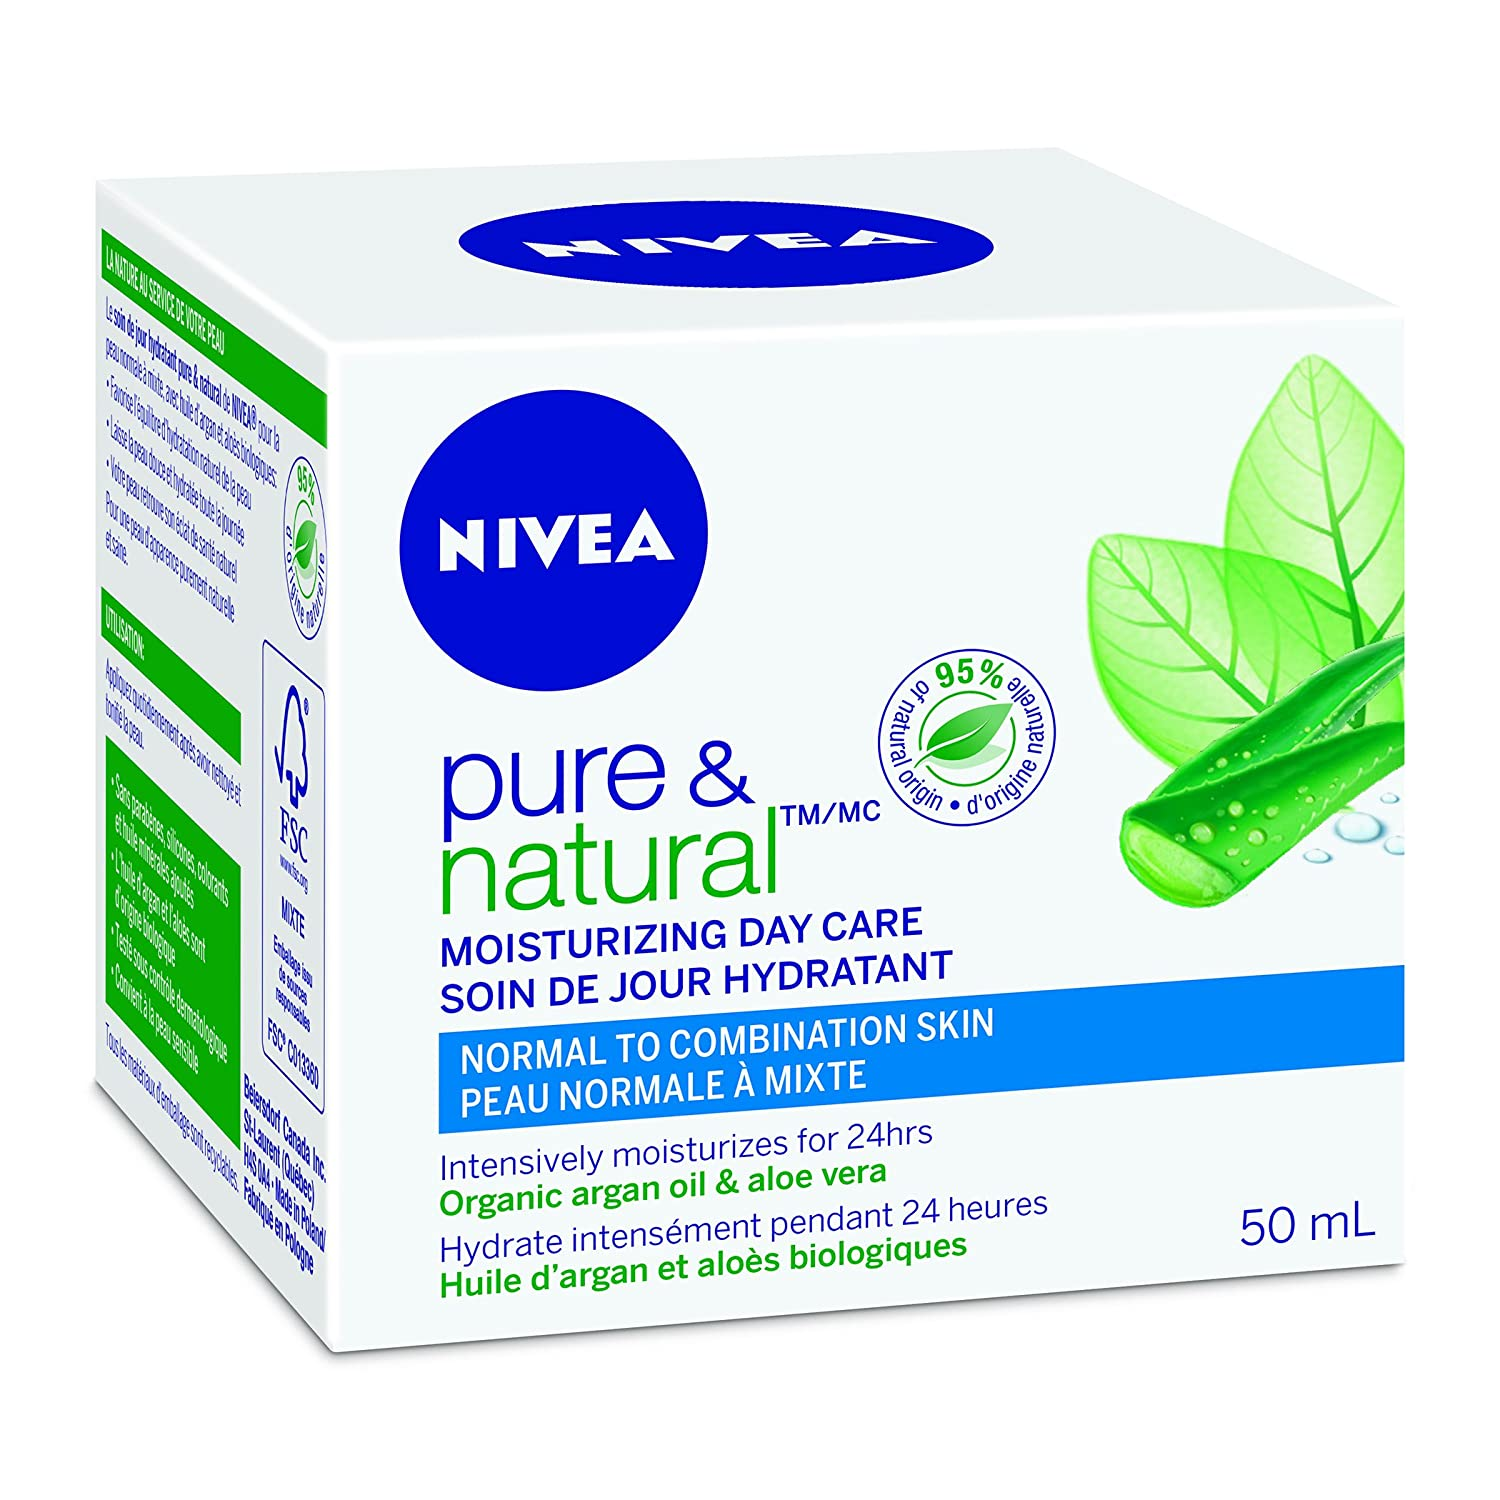 NIVEA Pure & Natural Moisturizing Day Care for Normal to Combination Skin, 50mL jar 056594002975